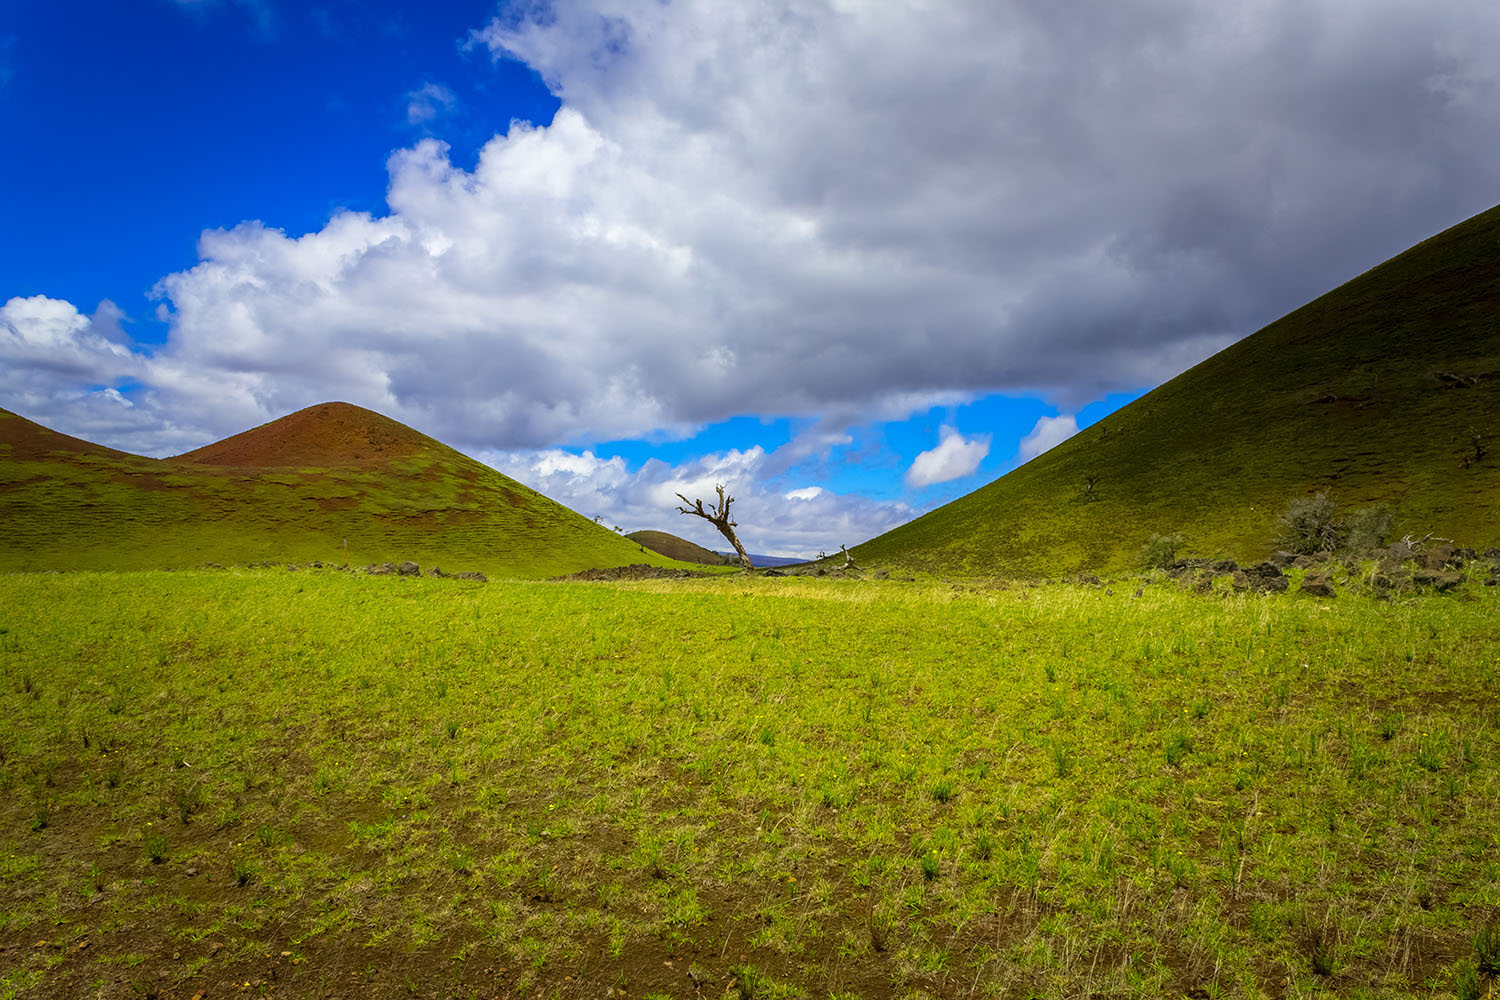 Landscape photograph of volcanic hills with a carpet of green grass - Big Island, Hawai'i